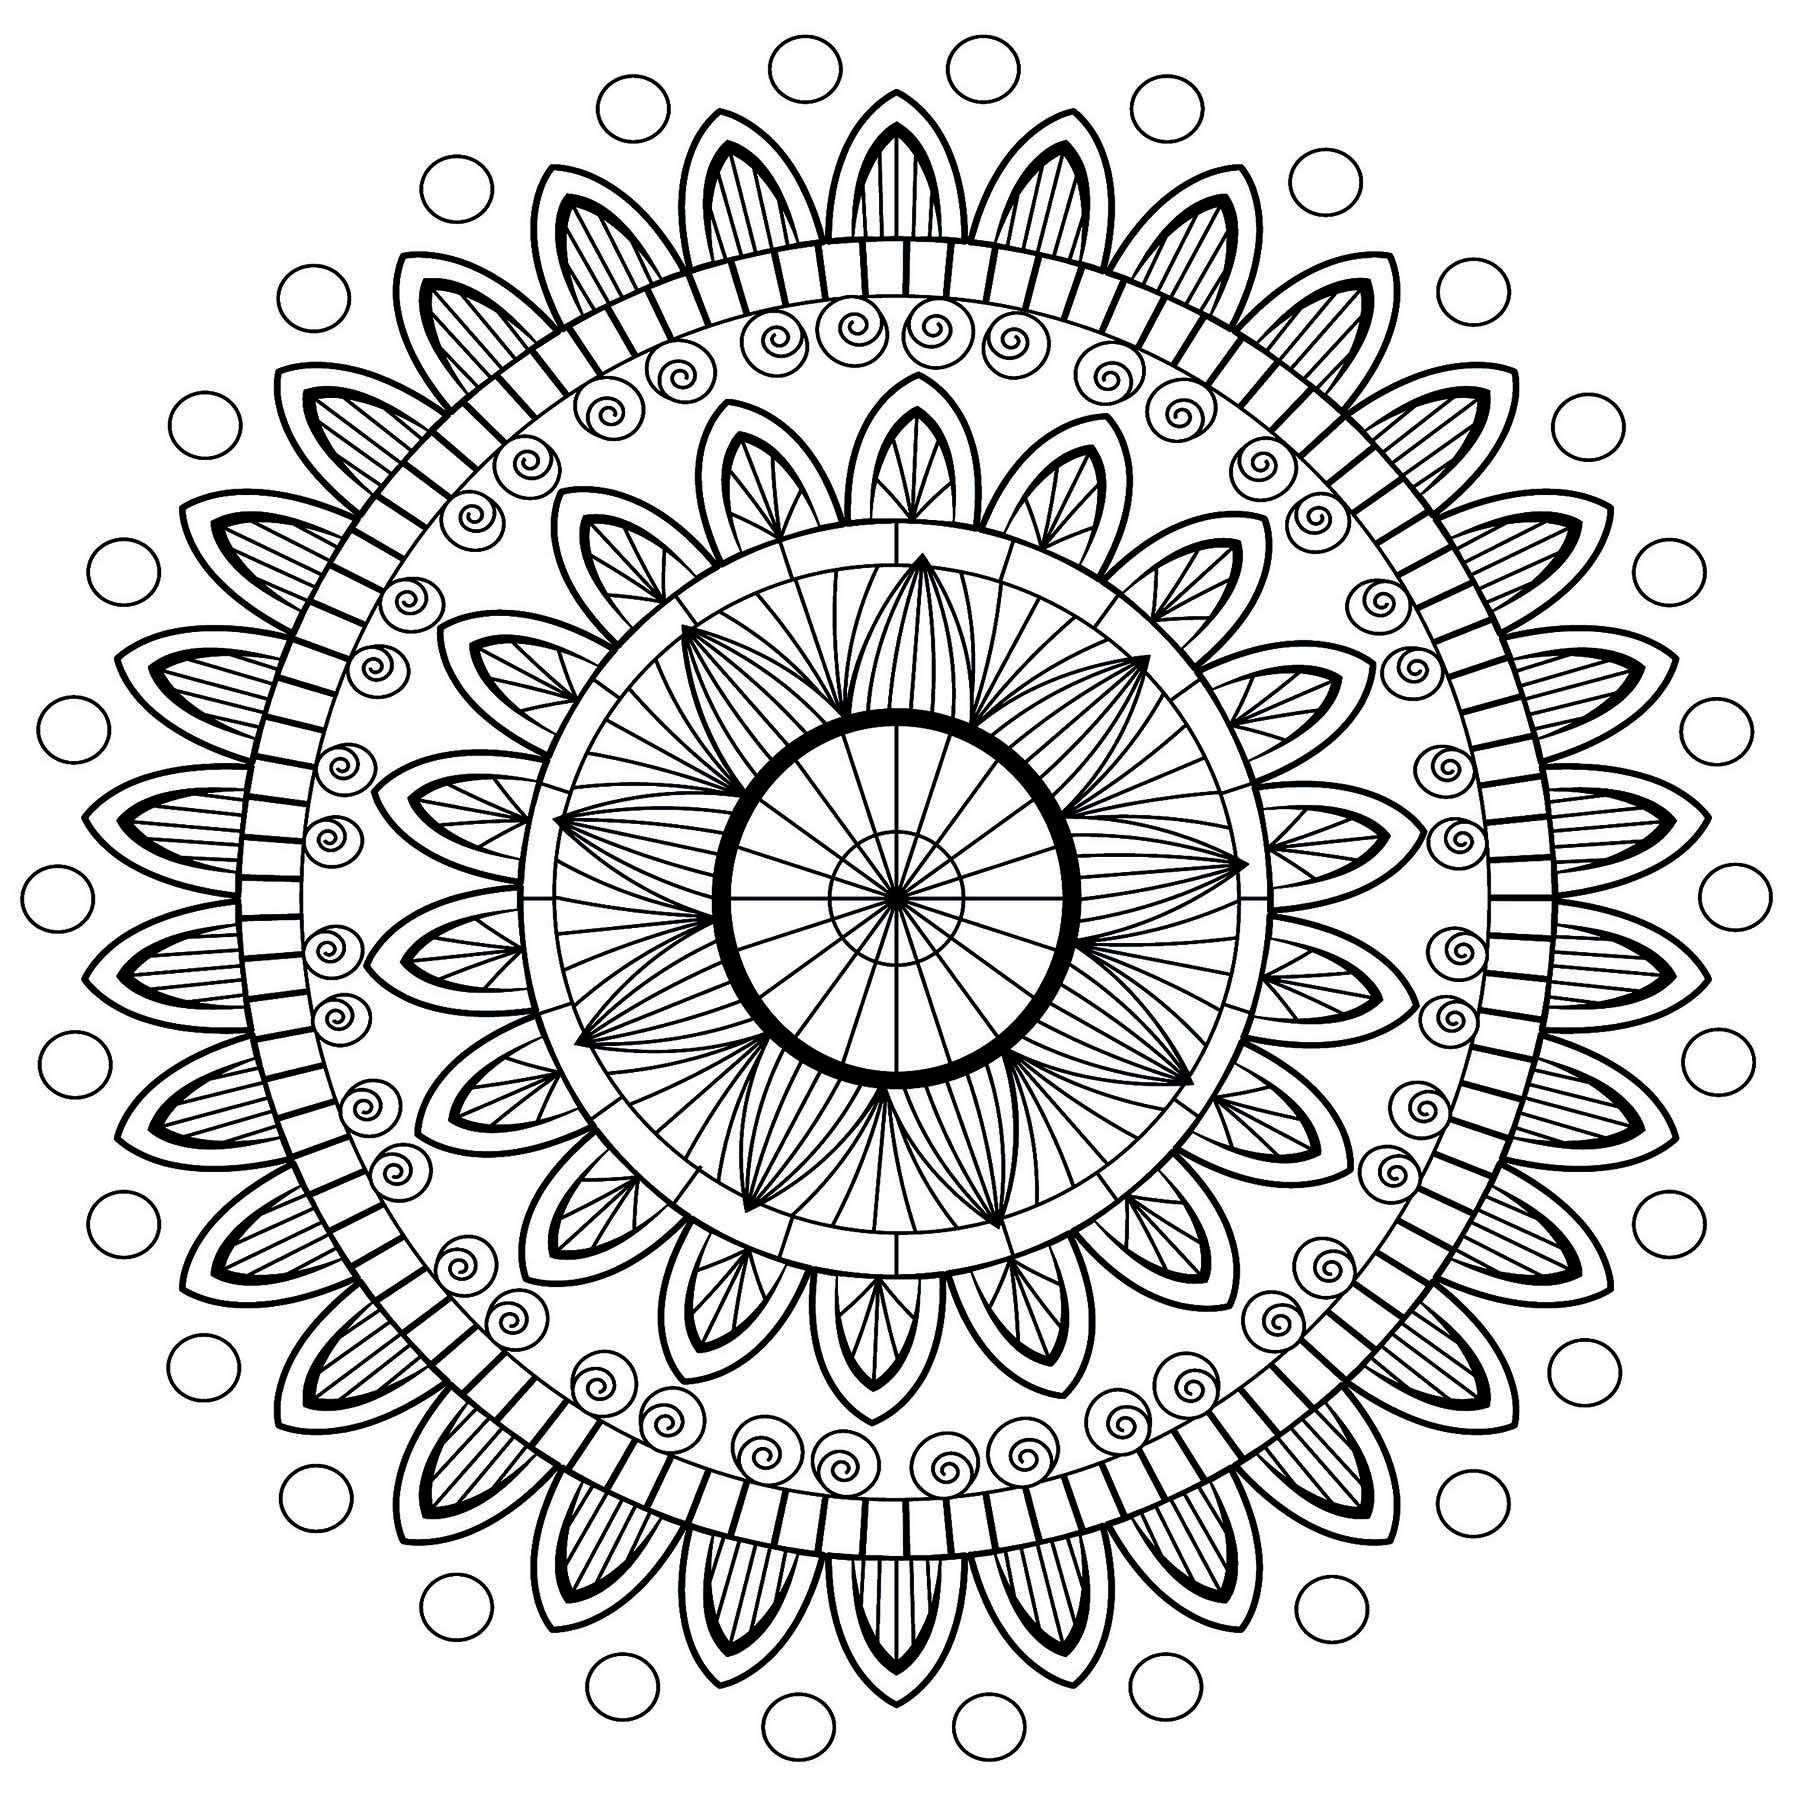 A beautiful Mandala with petals on several levels, and circles at the ends.